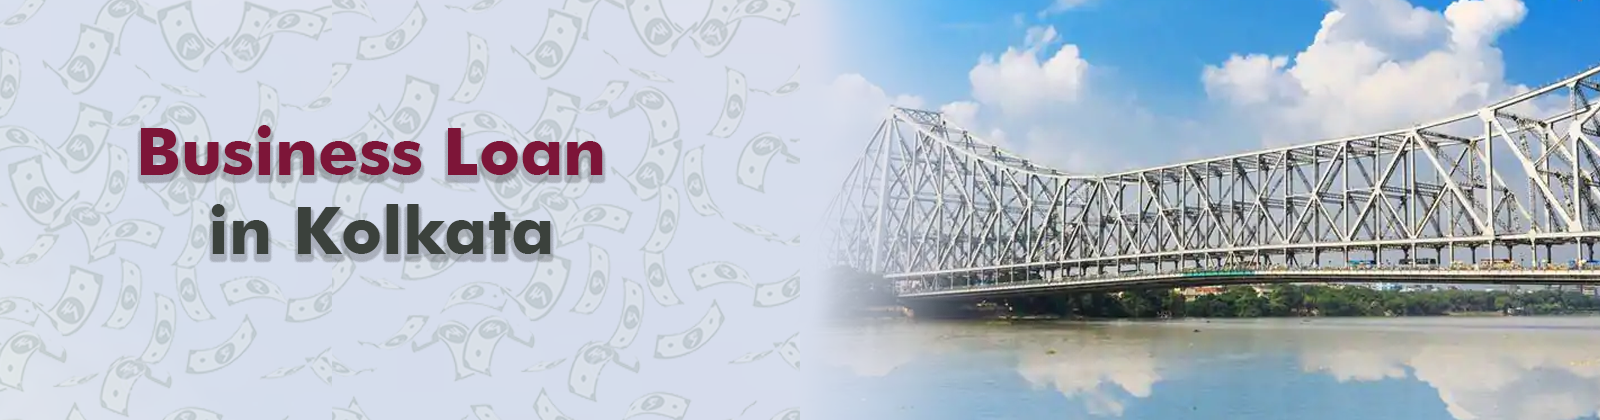 Business Loan in Kolkata